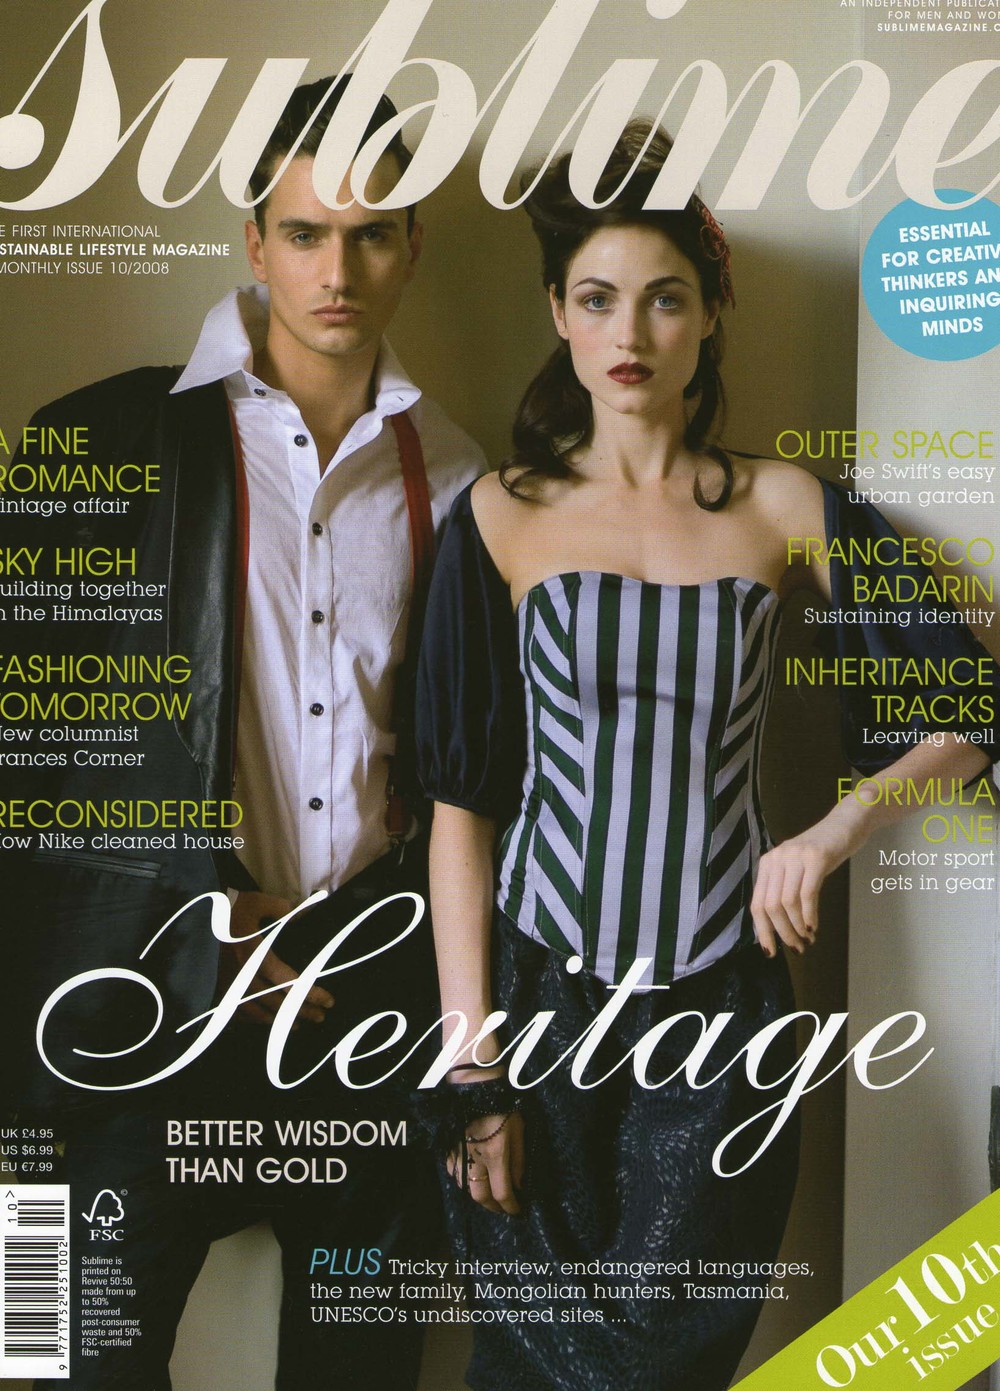 sublime cover oct 2008.jpg